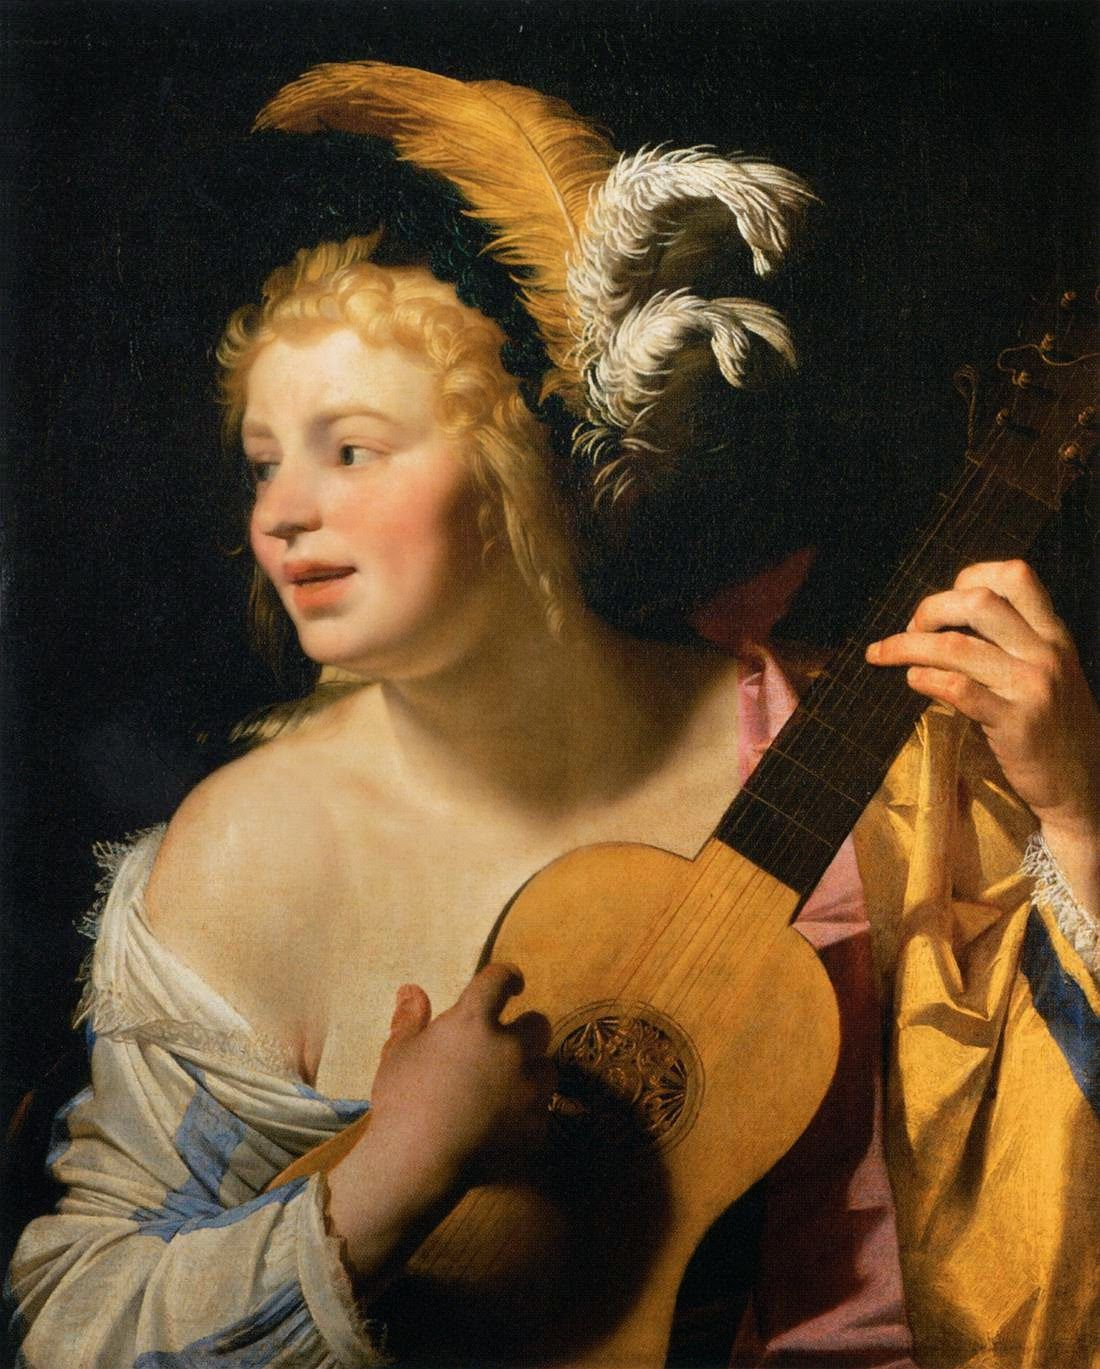 Woman Playing the Guitar - Gerrit van Honthorst (1624)